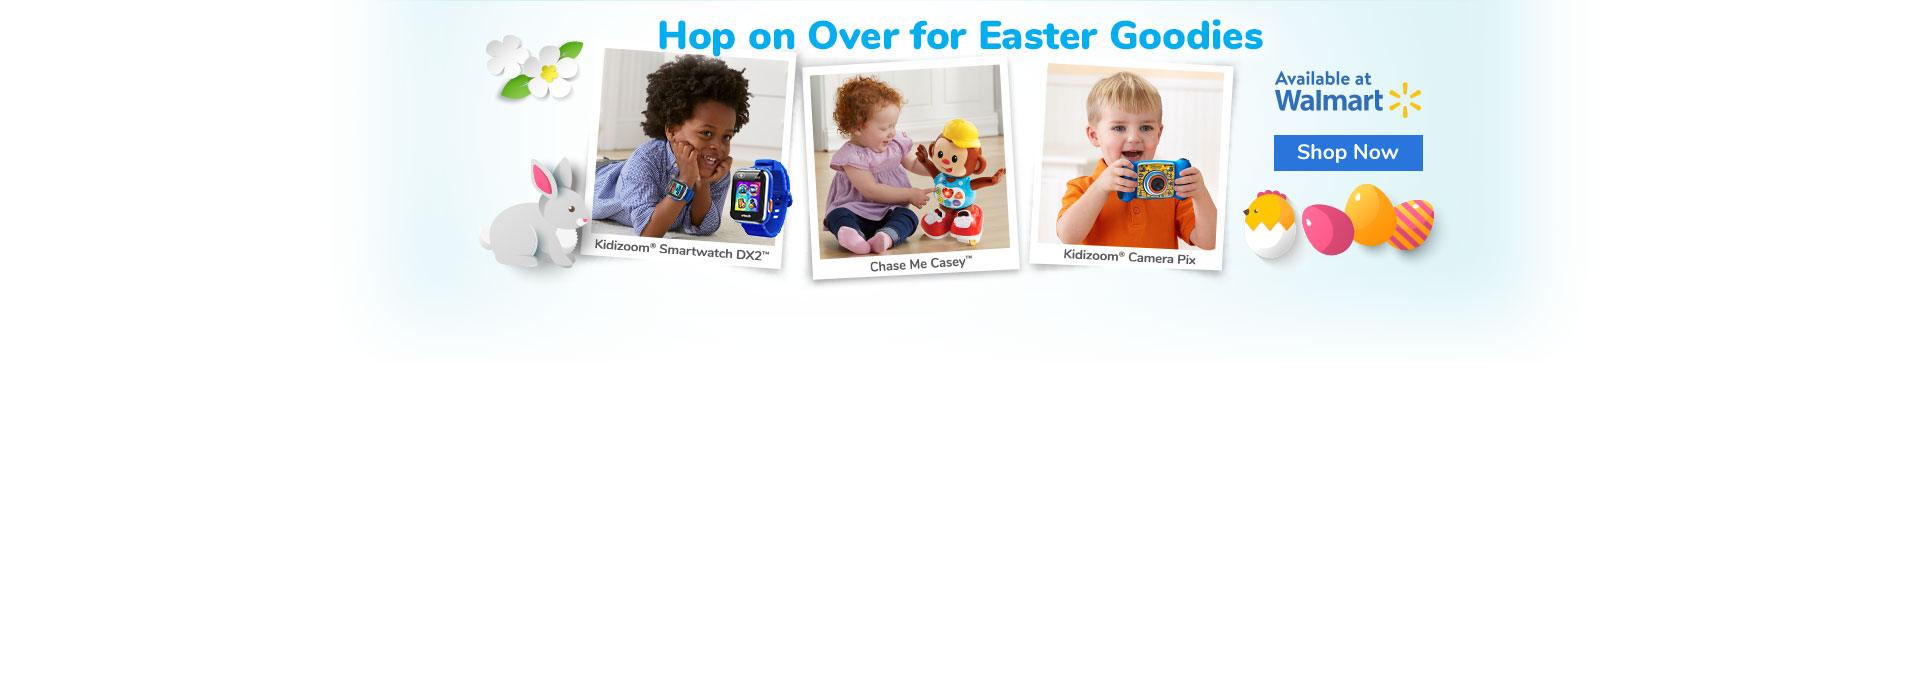 Get Hopping this Easter with VTech Toys | Buy Now at Walmart